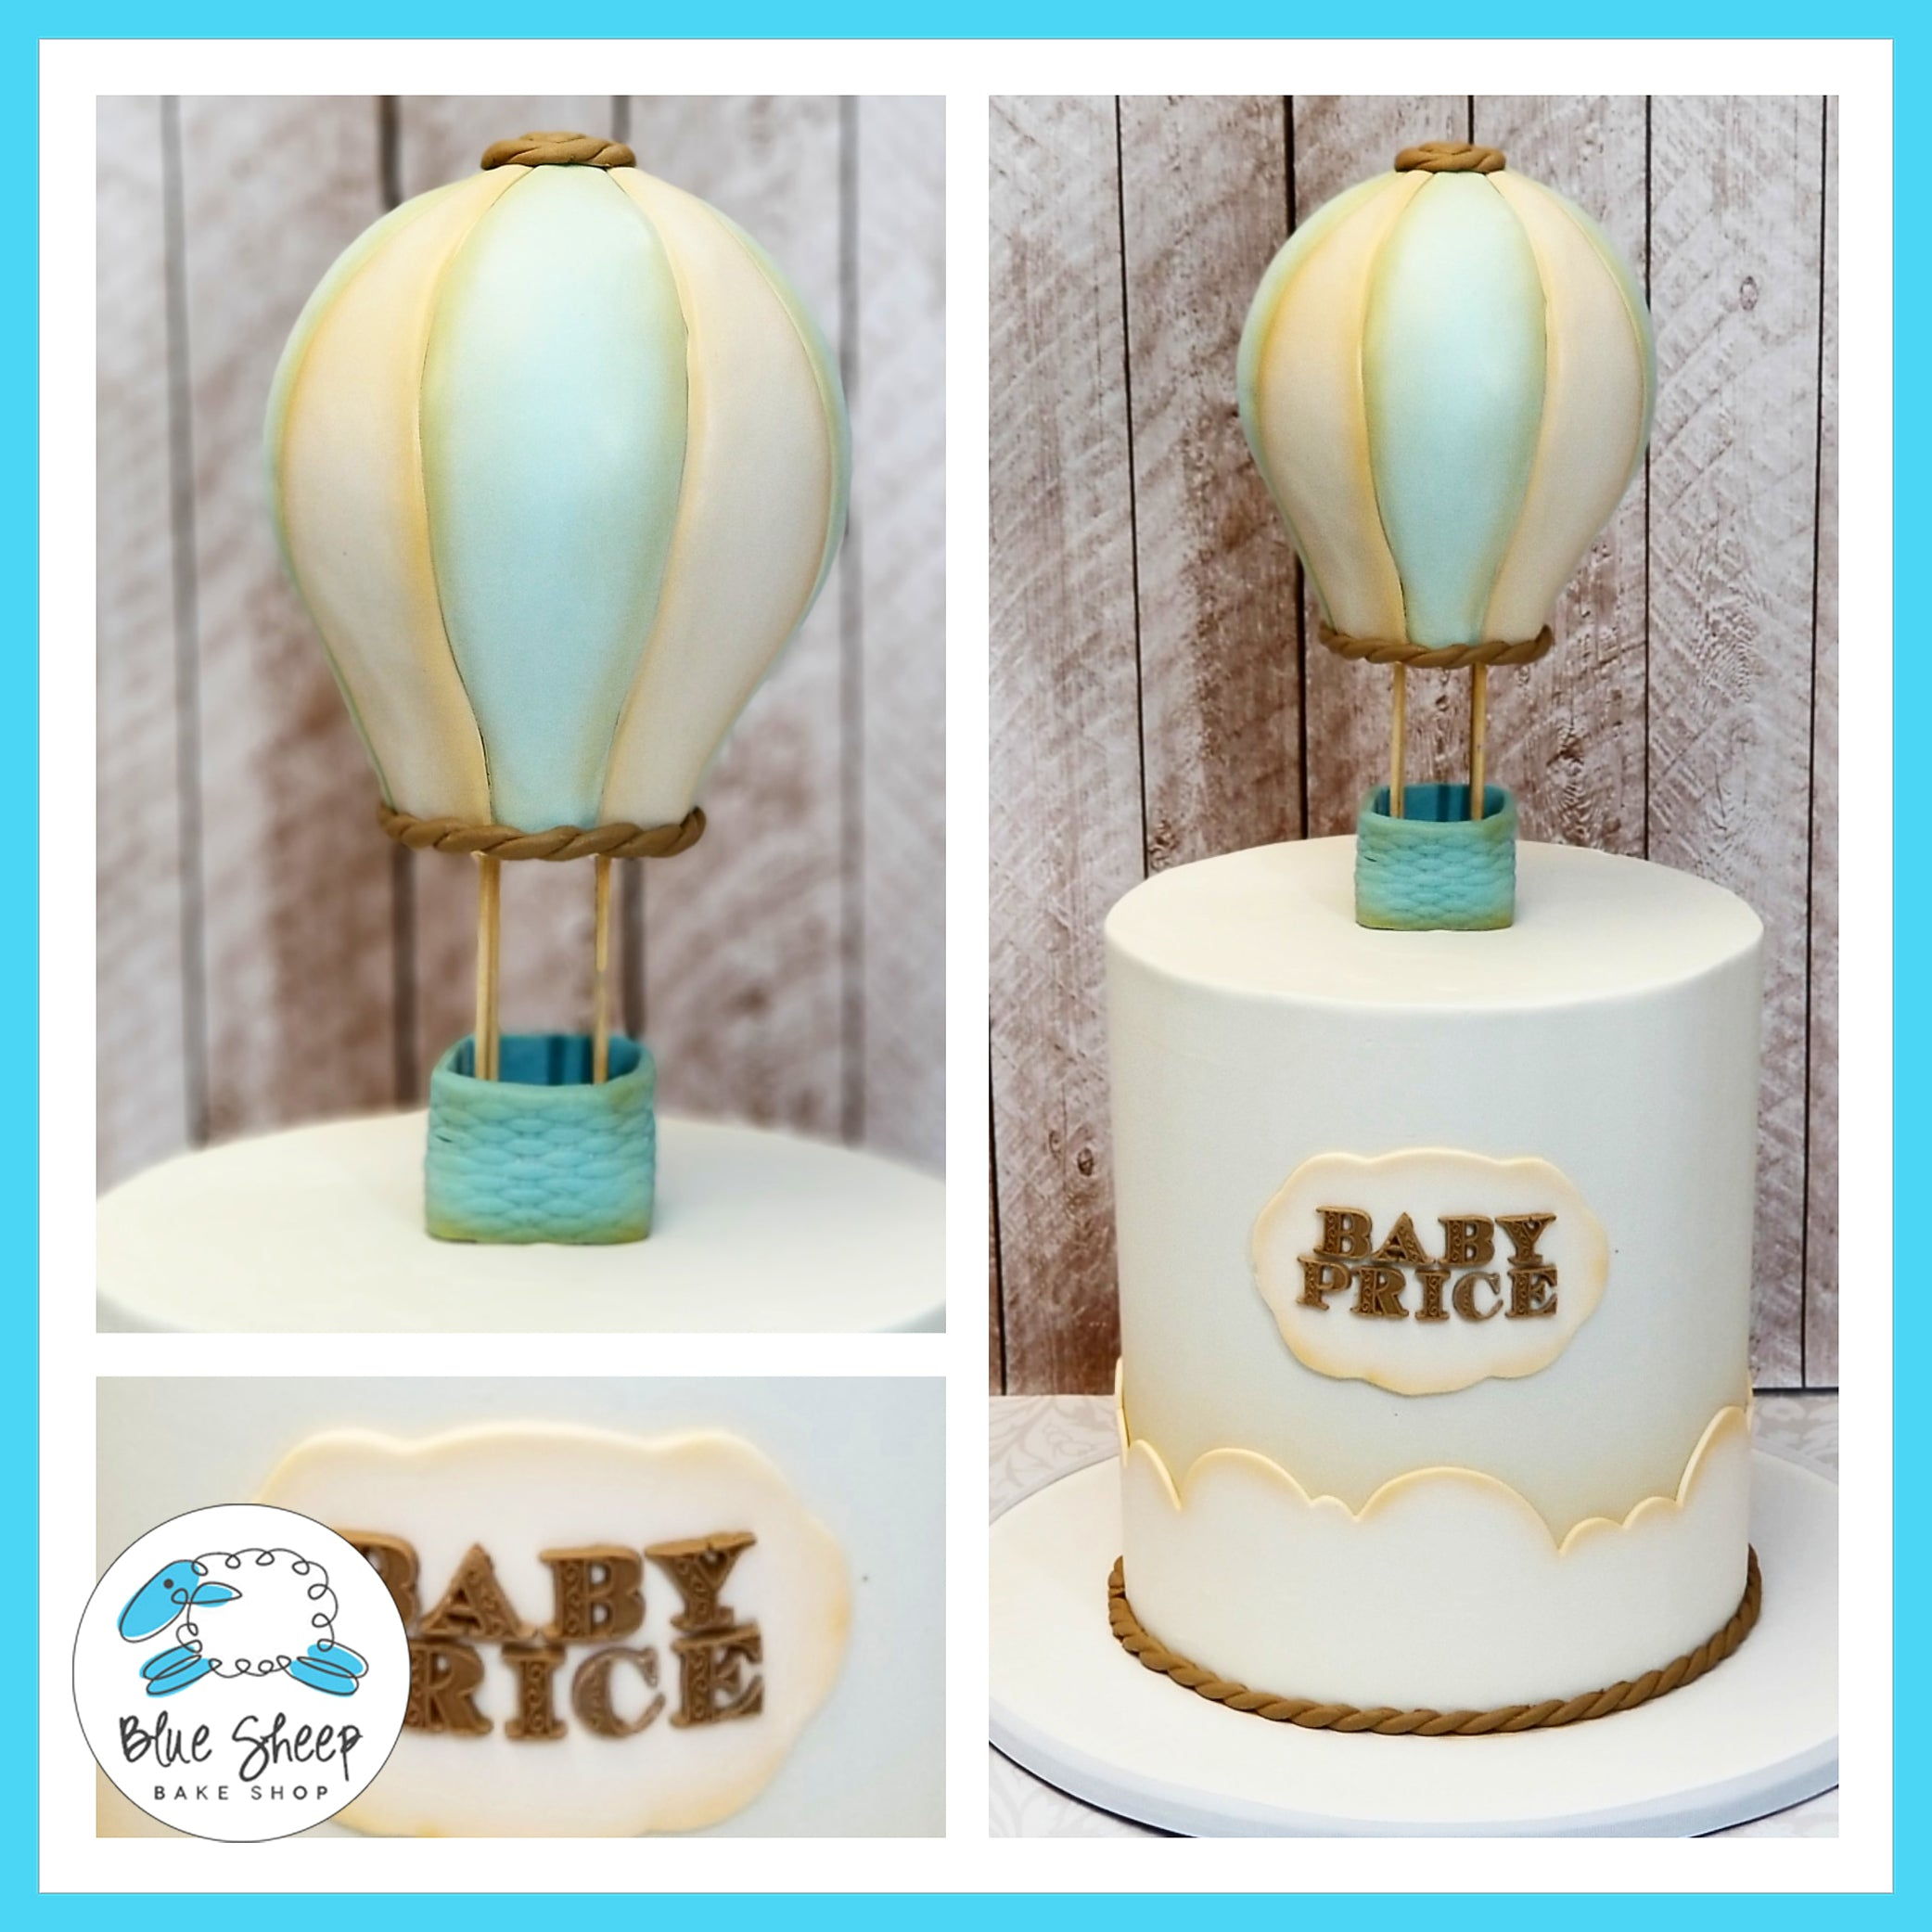 Vintage Hot Air Balloon Baby Shower Cake Blue Sheep Bake Shop